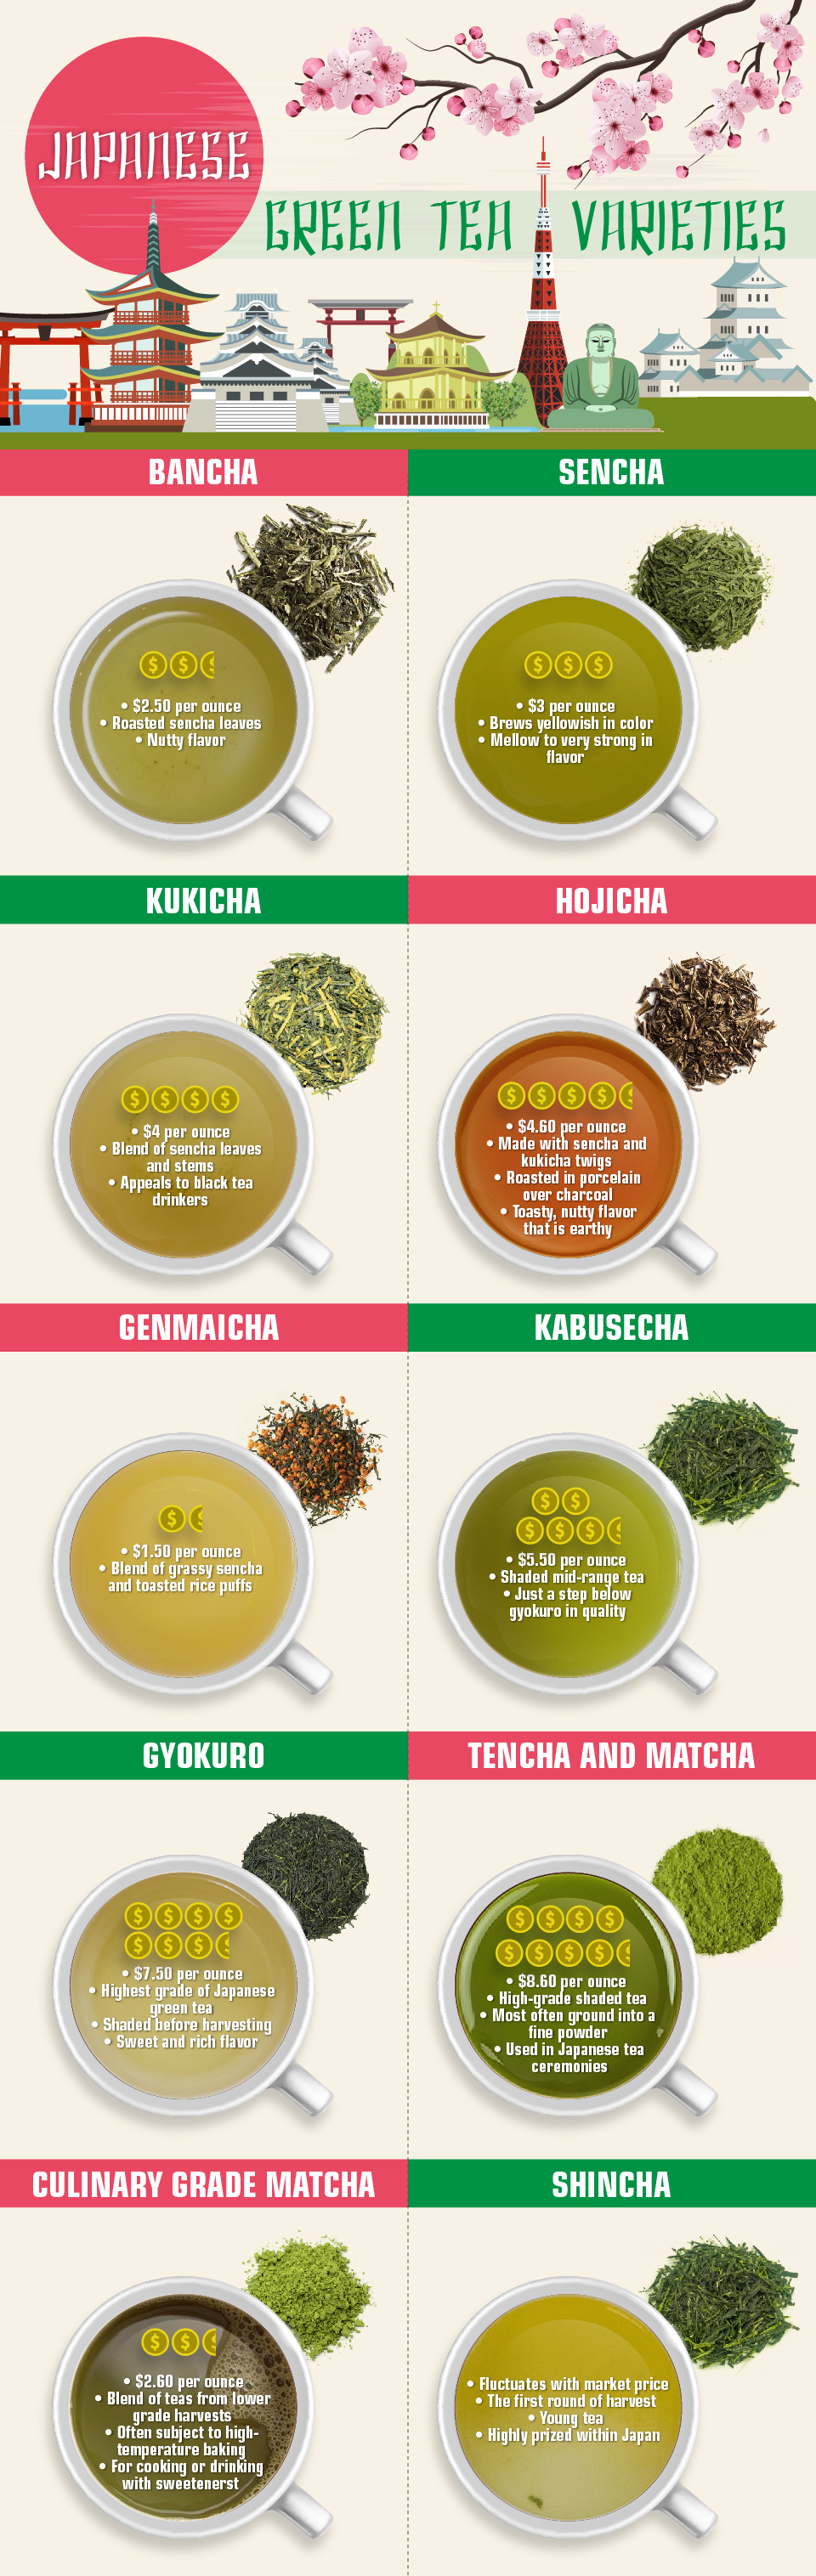 the health benefits, effects and uses of green tea